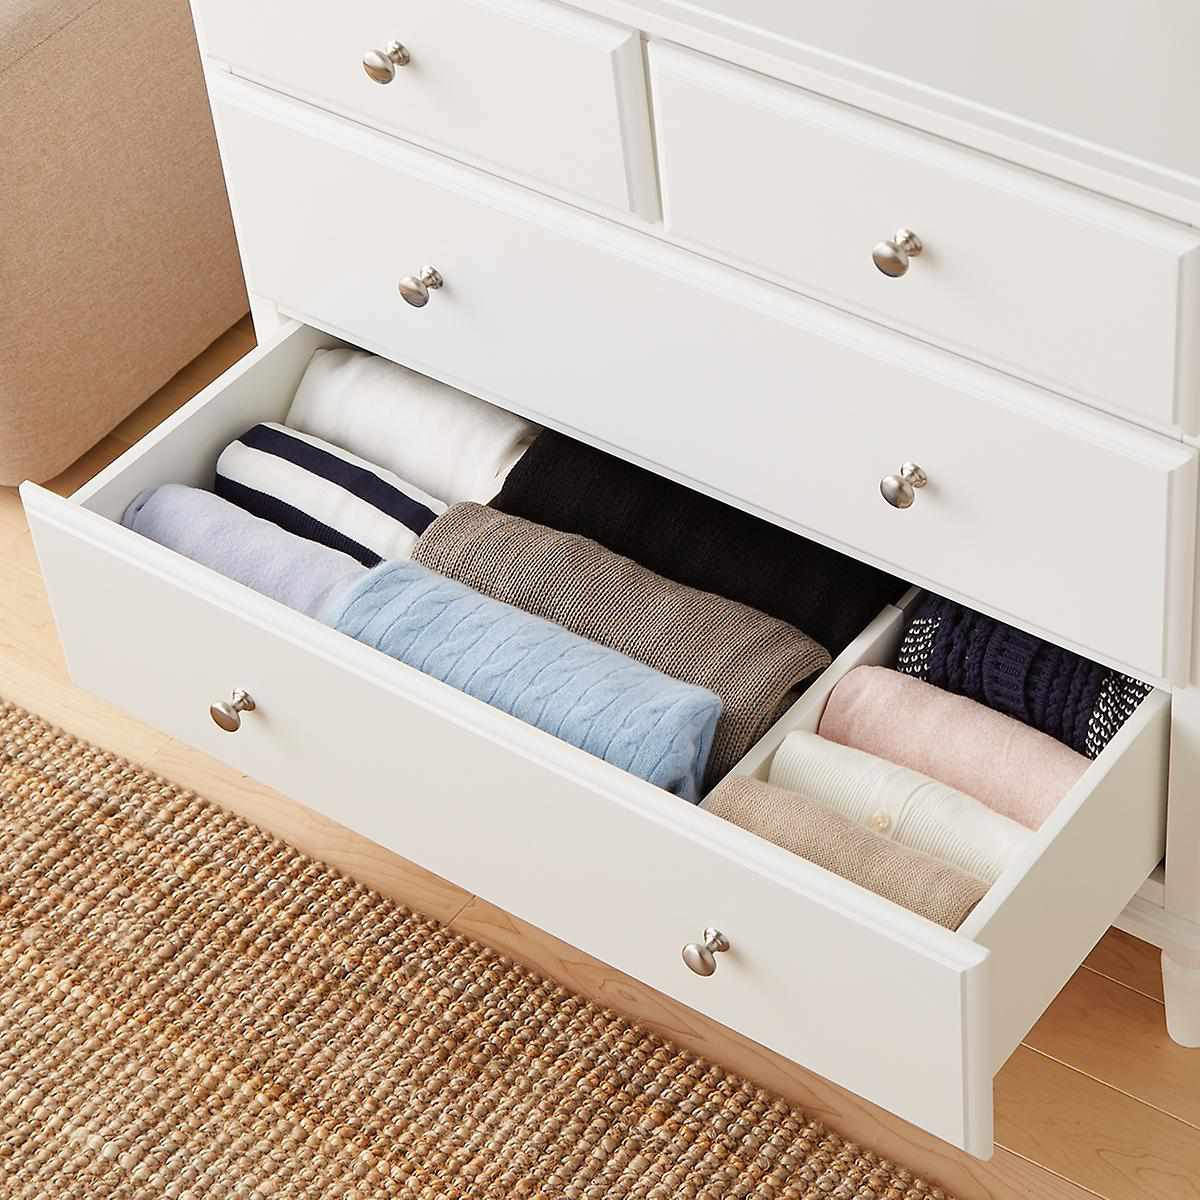 Dial Industries Dream Drawer Organizers